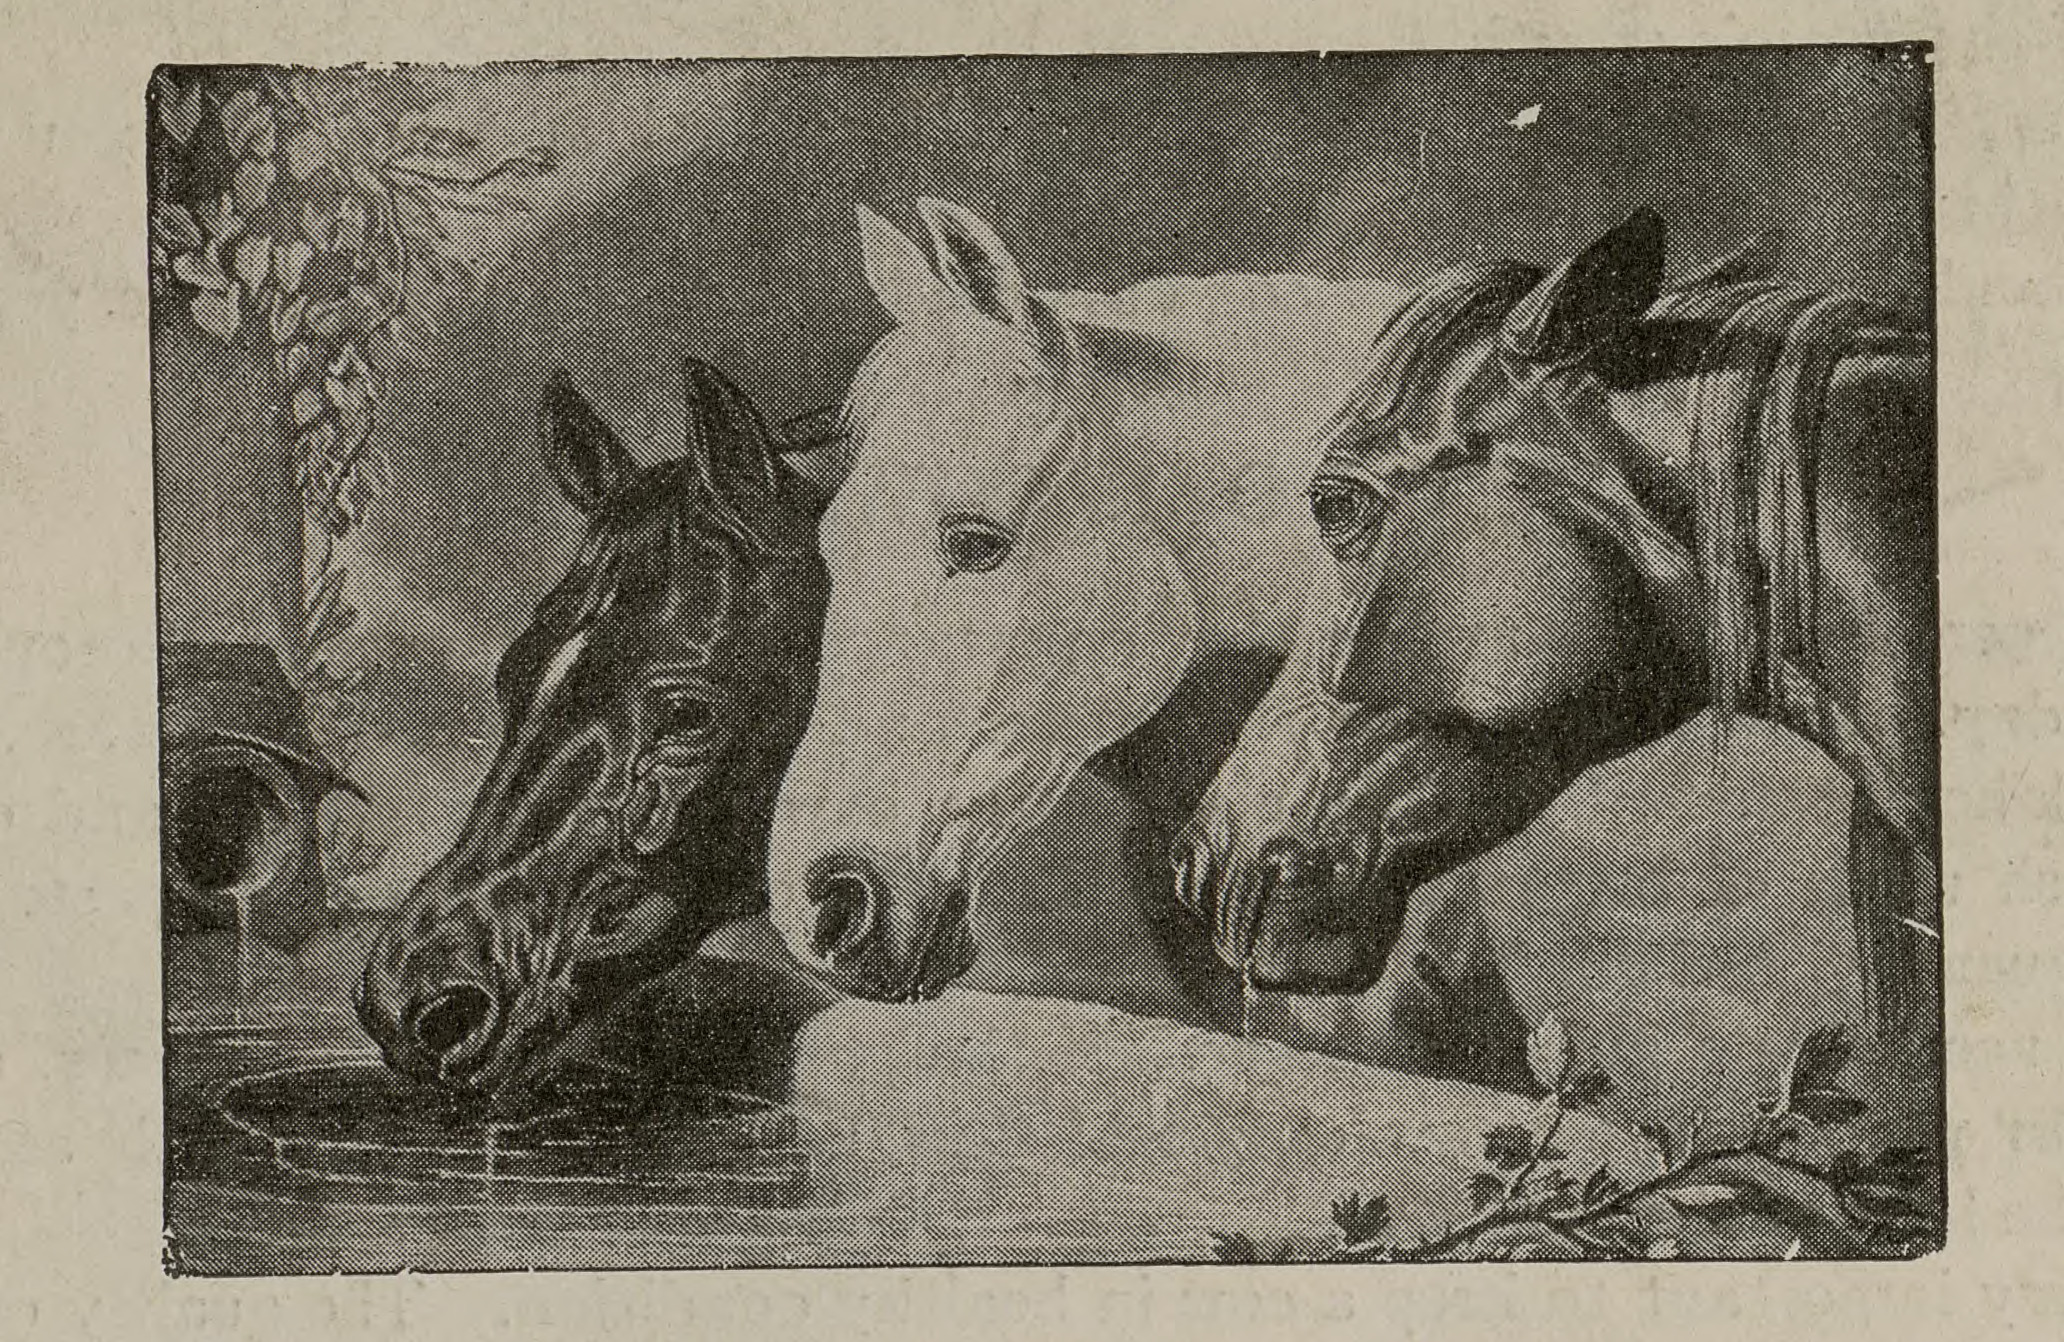 """Horses from """"Ways of Kindness,"""" which was intended to teach children about ways to be kind to animals in their daily lives. From the John Ptak Collection of Animal Rights and Animal Welfare Printed Education Materials."""